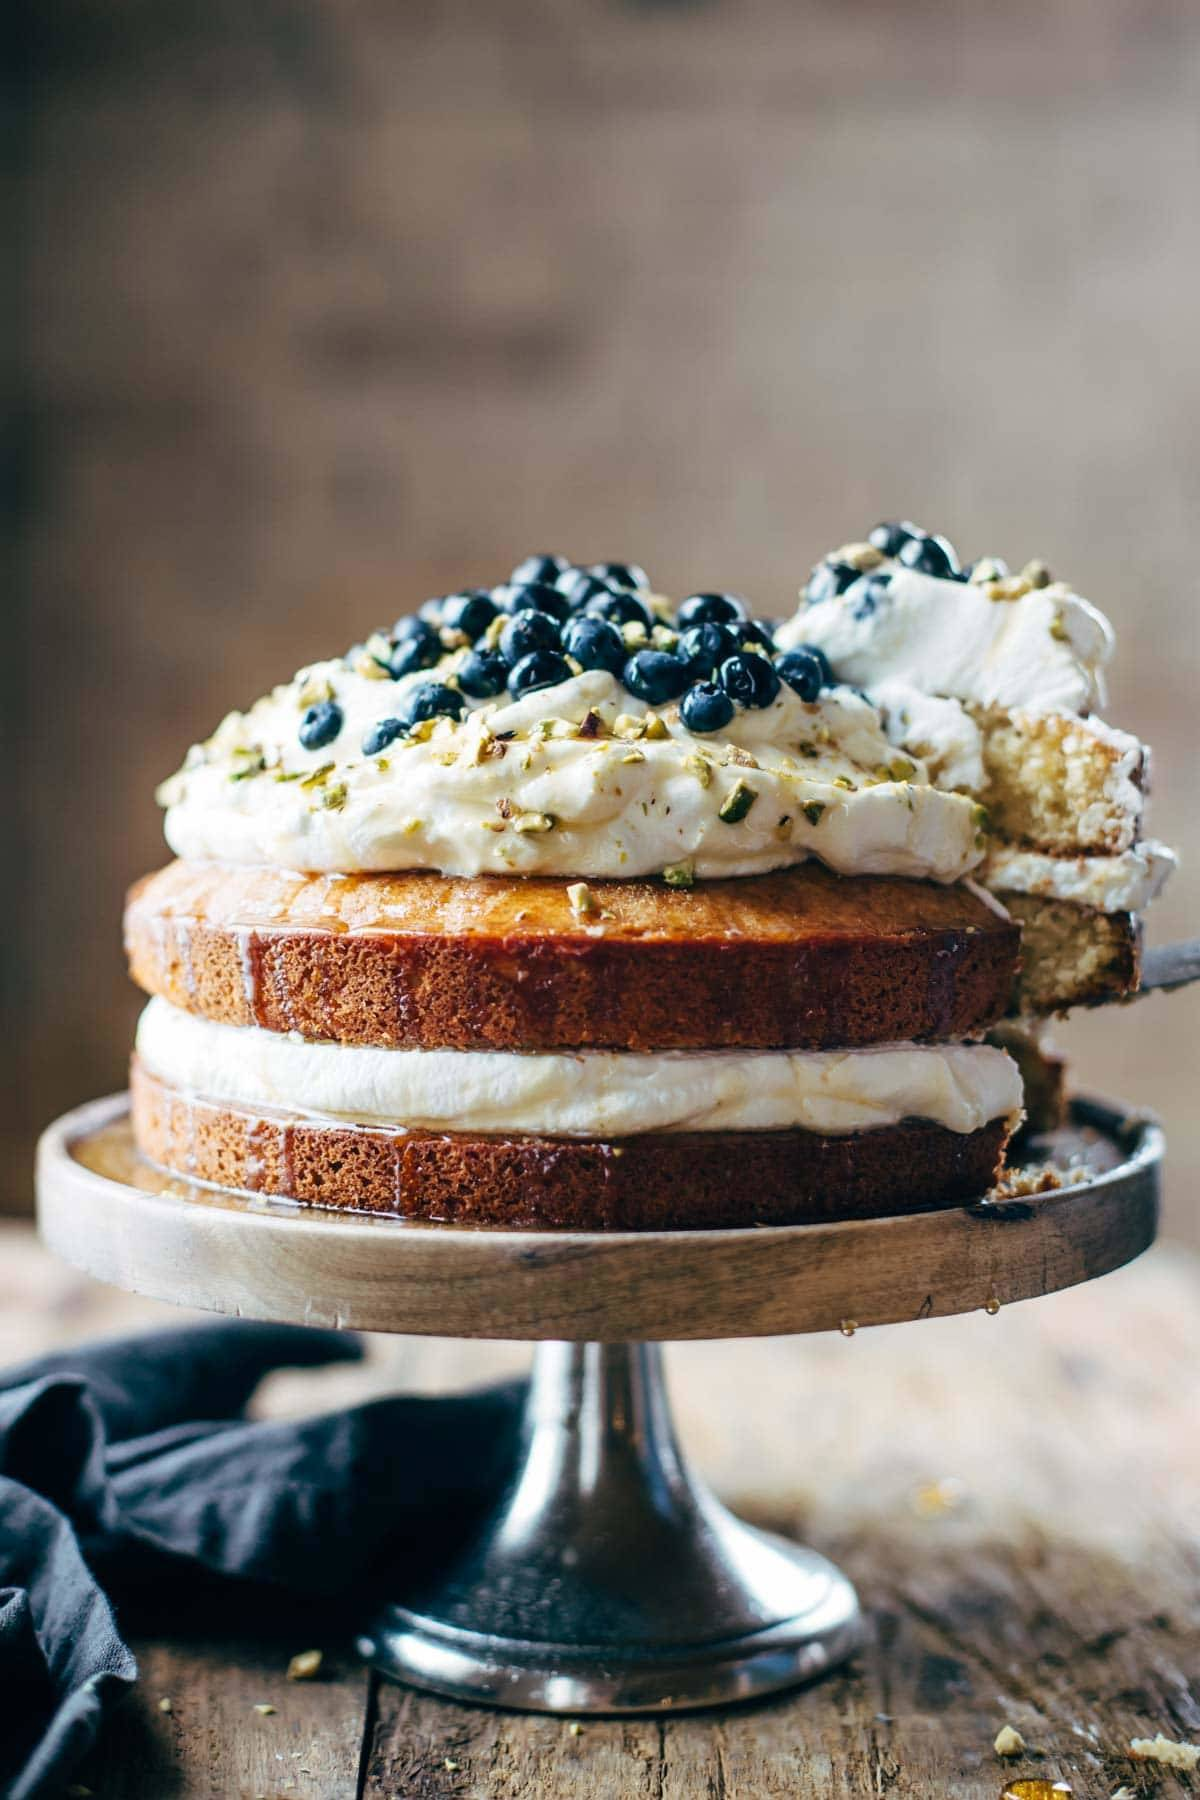 Orange Brunch Cake - SUPER YUMMY because it's made with olive oil and whole oranges! topped with whipped cream and blueberries and you're in fancy brunch business. | pinchofyum.com